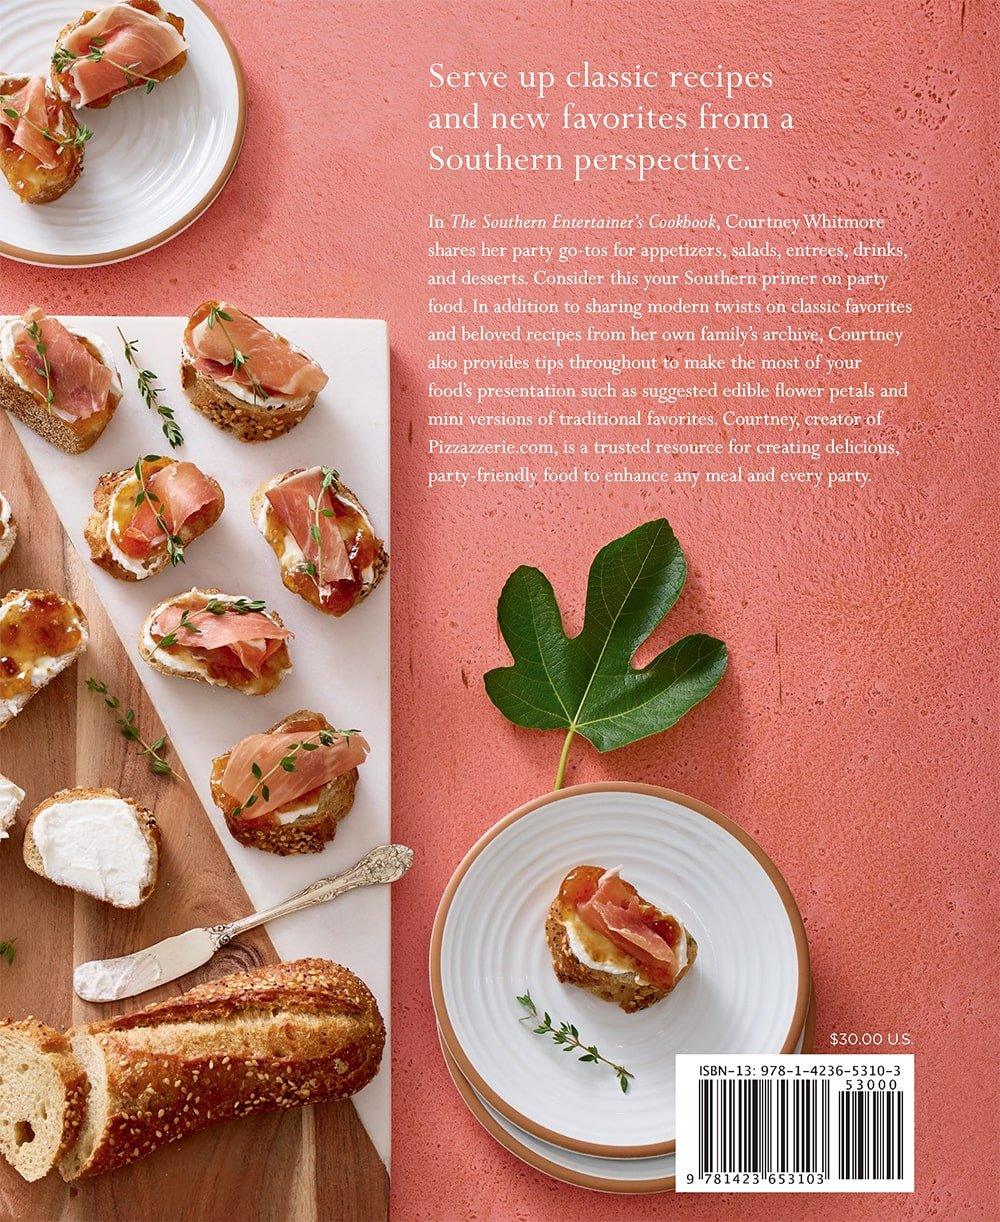 Southern Entertainer's Cookbook by Courtney Whitmore